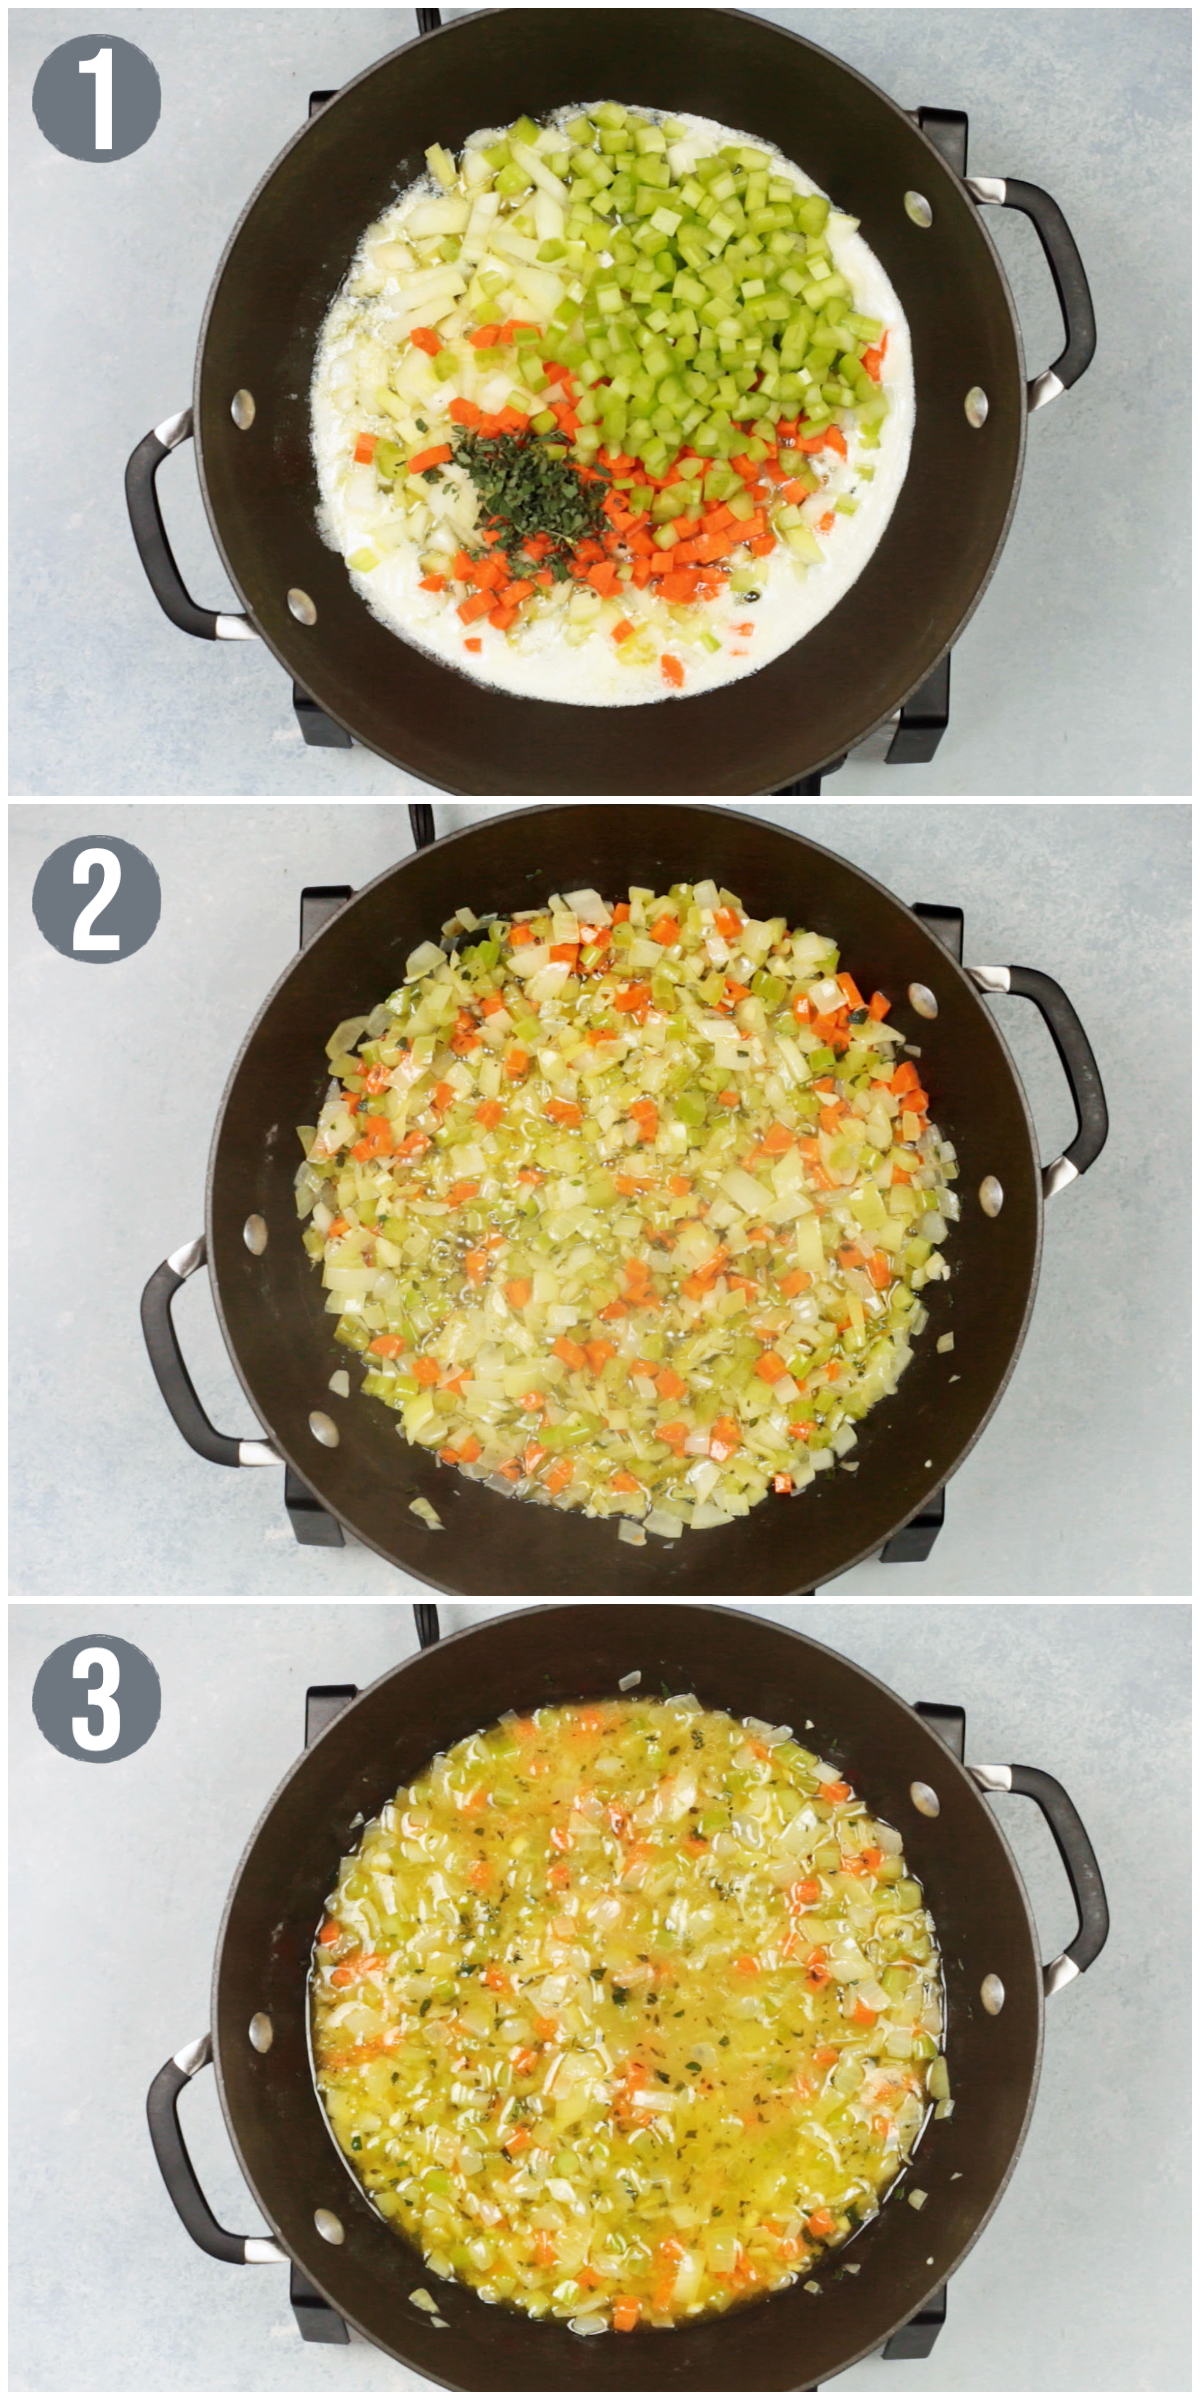 three photos showing the process of making homemade vegetarian stuffing